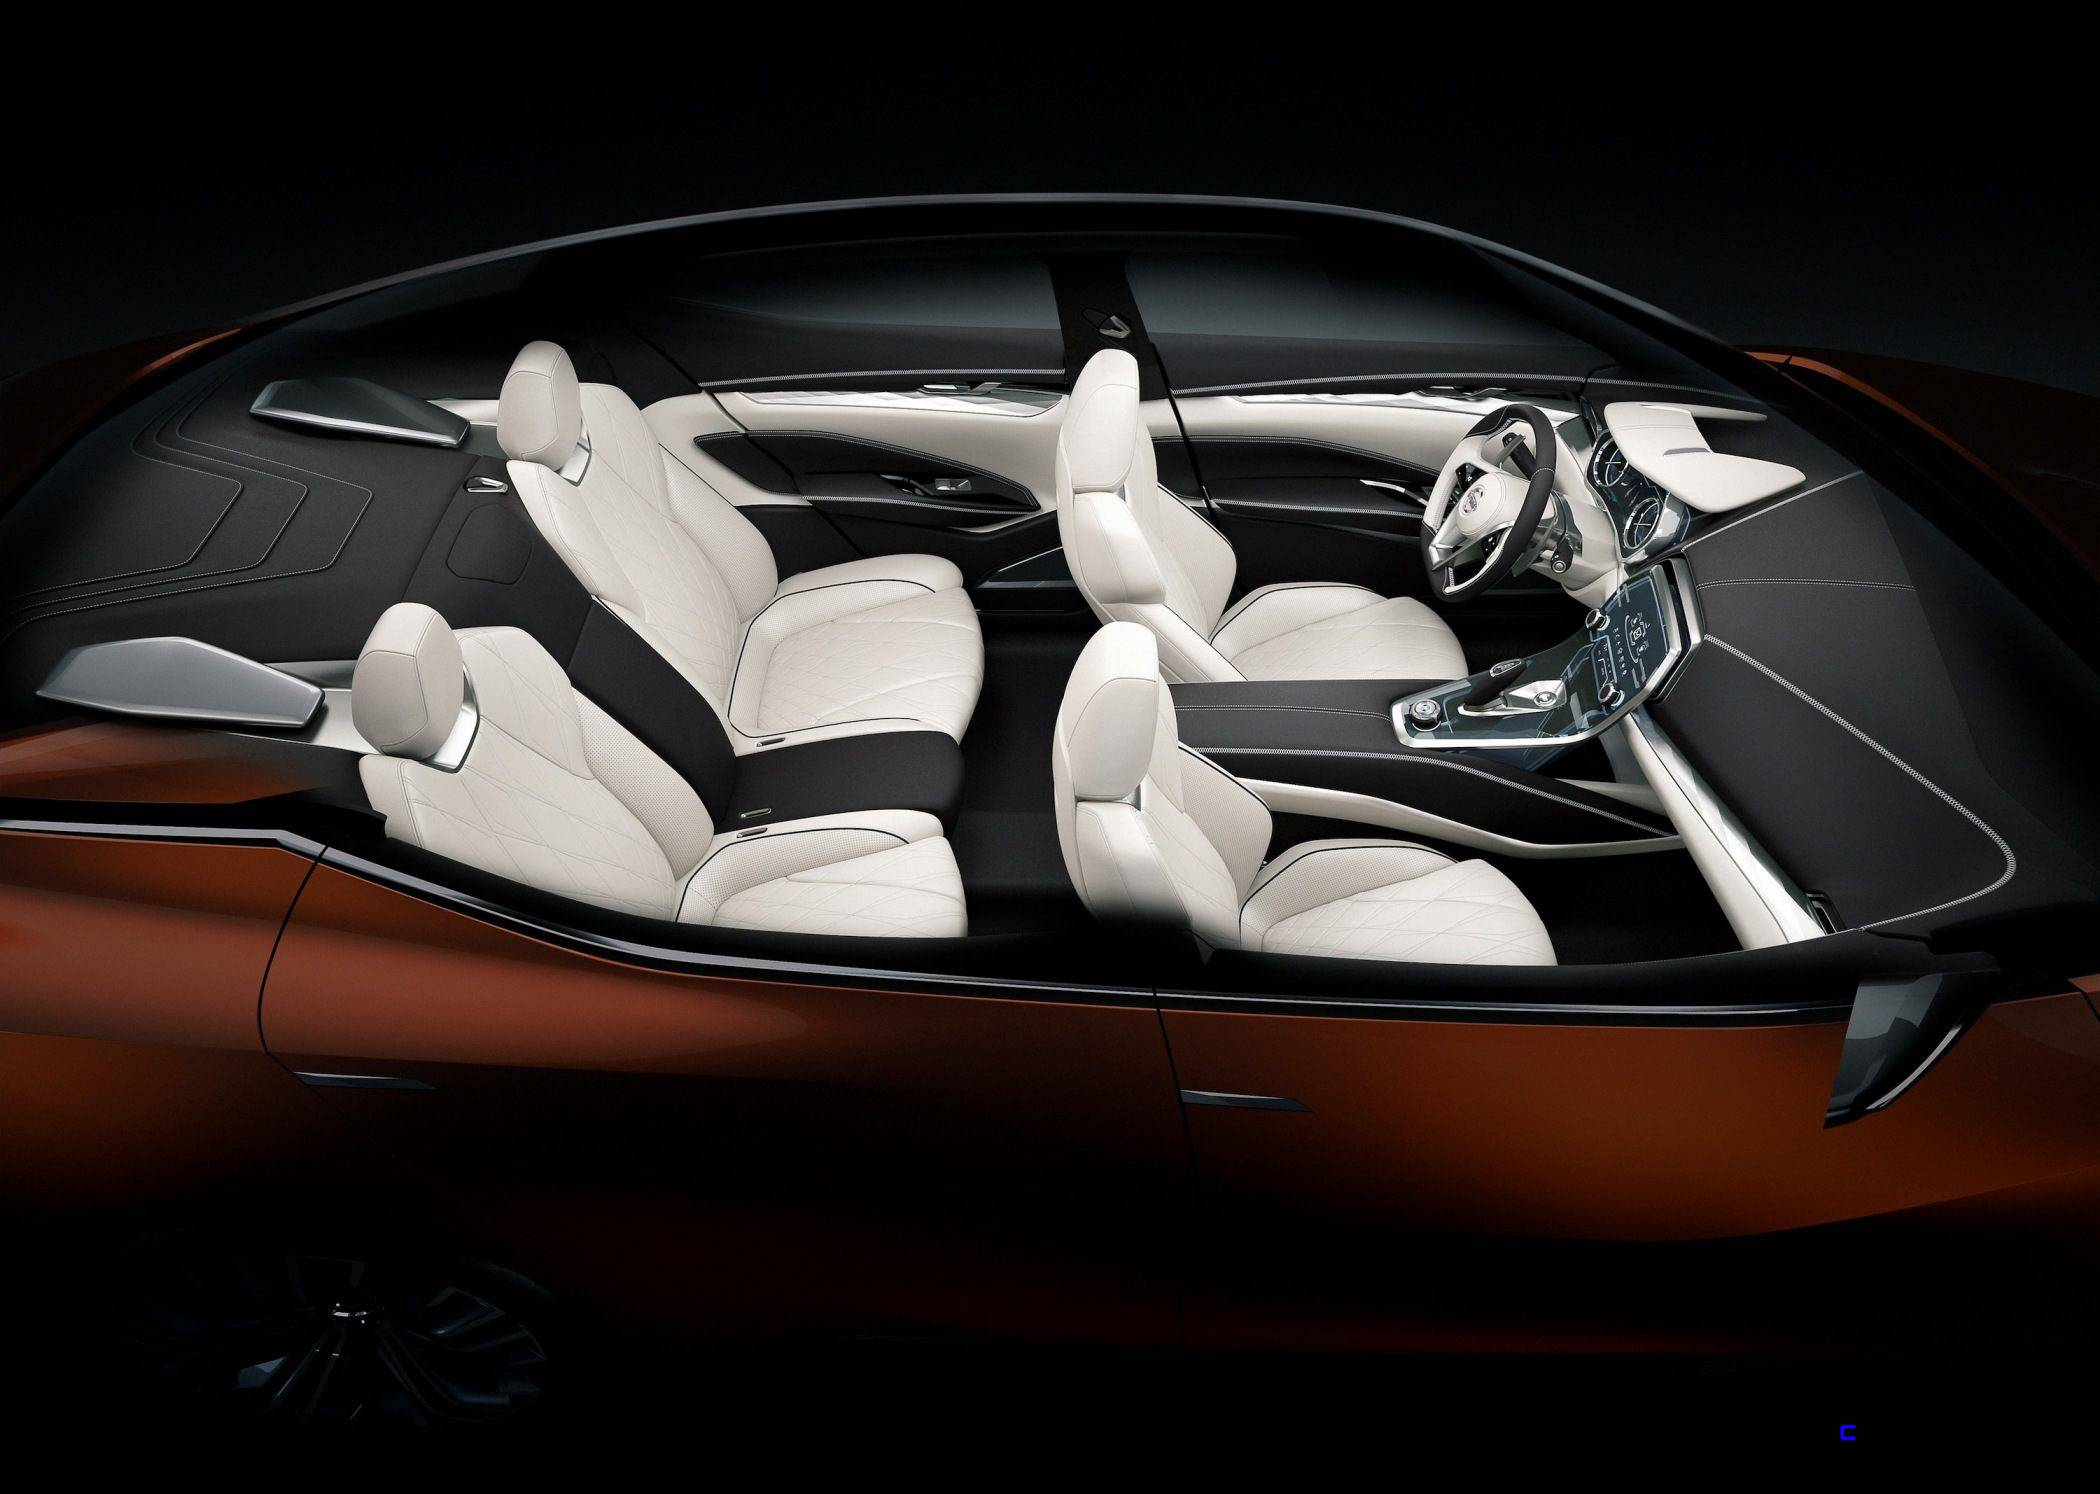 ... 2014 Nissan Maxima Source · Future Nissan Maxima Concept 3 5 In Lower  Roof 2 1 In Wider